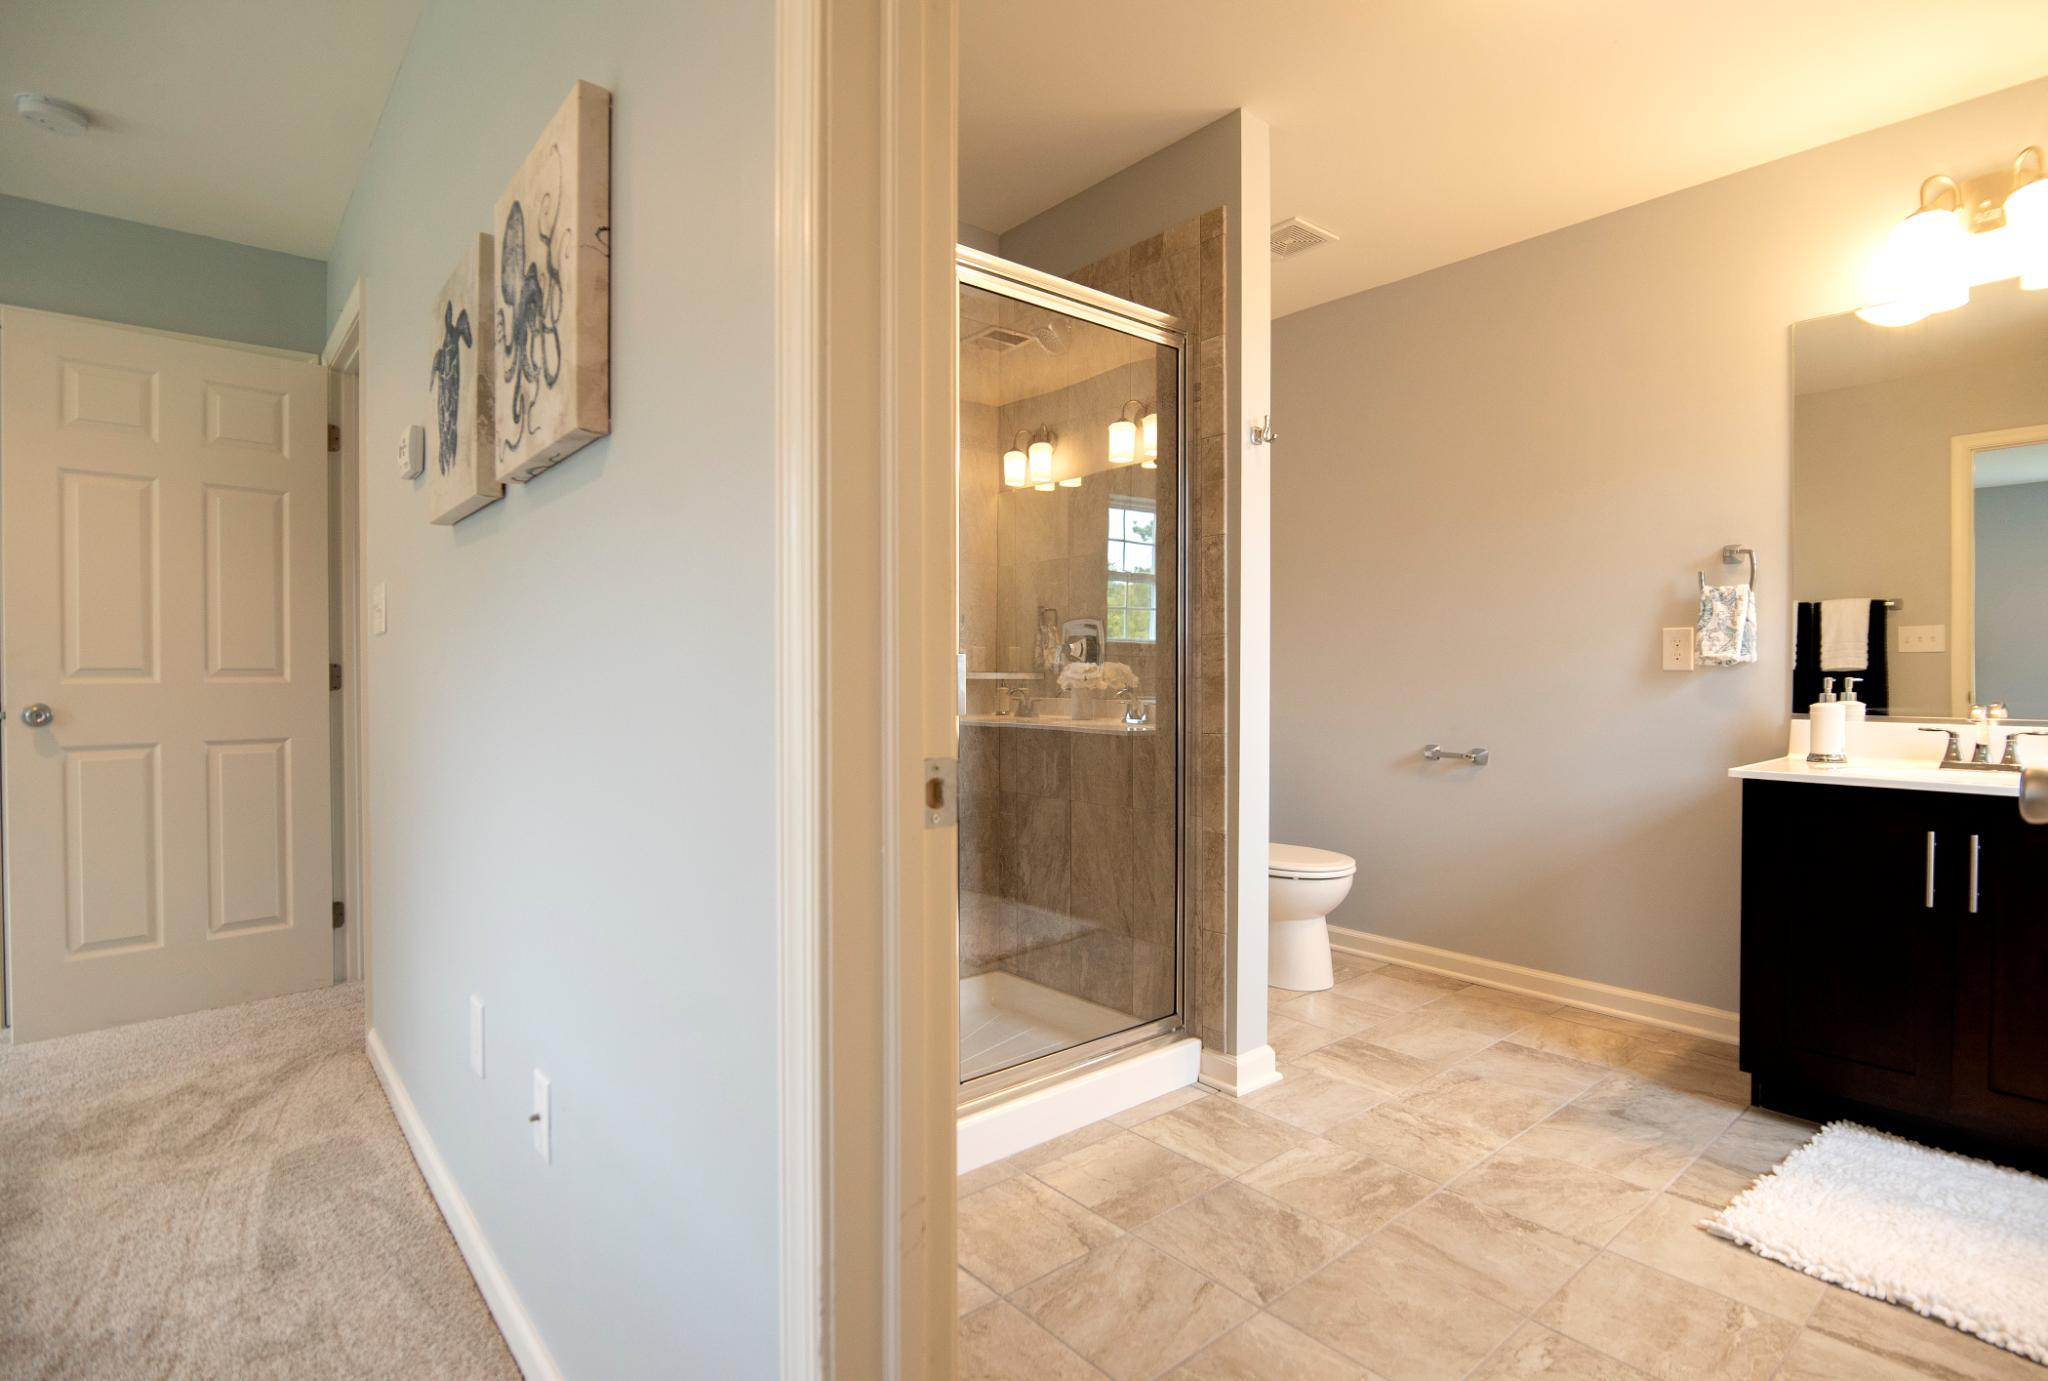 Bathroom featured in the Kingston Traditional By Tuskes Homes in Scranton-Wilkes-Barre, PA